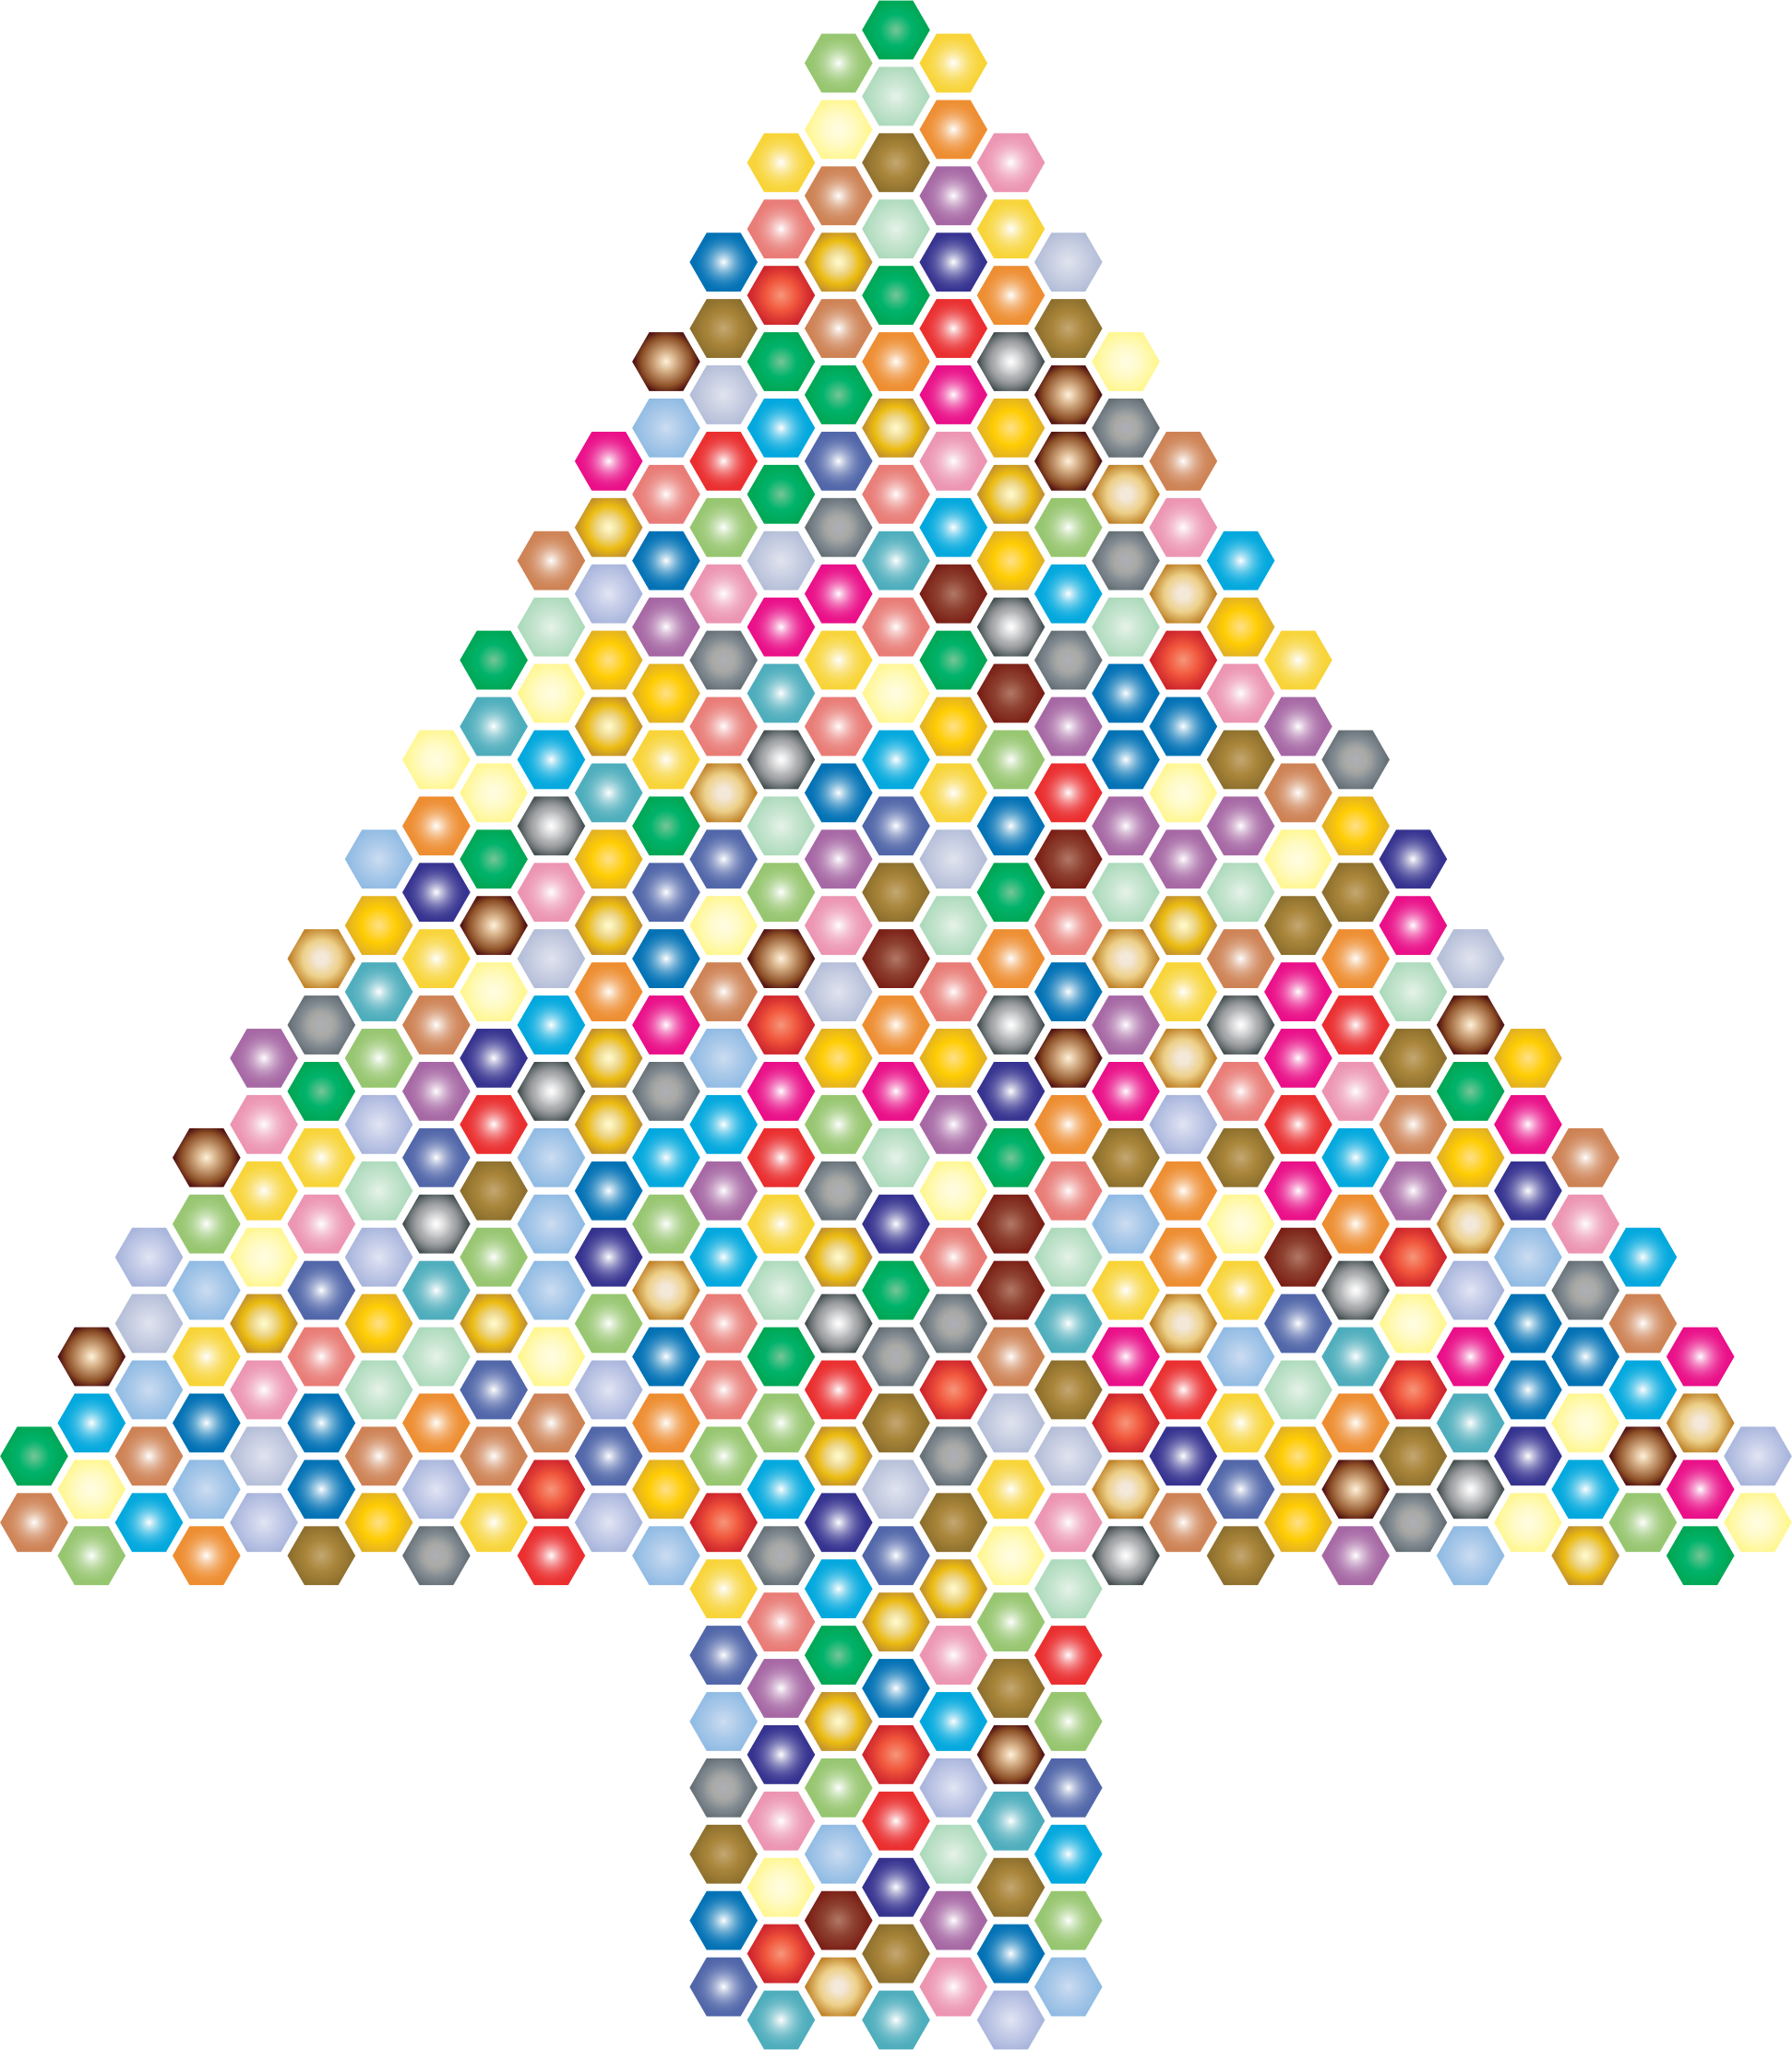 Prismatic Hexagonal Abstract Christmas Tree 2 by GDJ